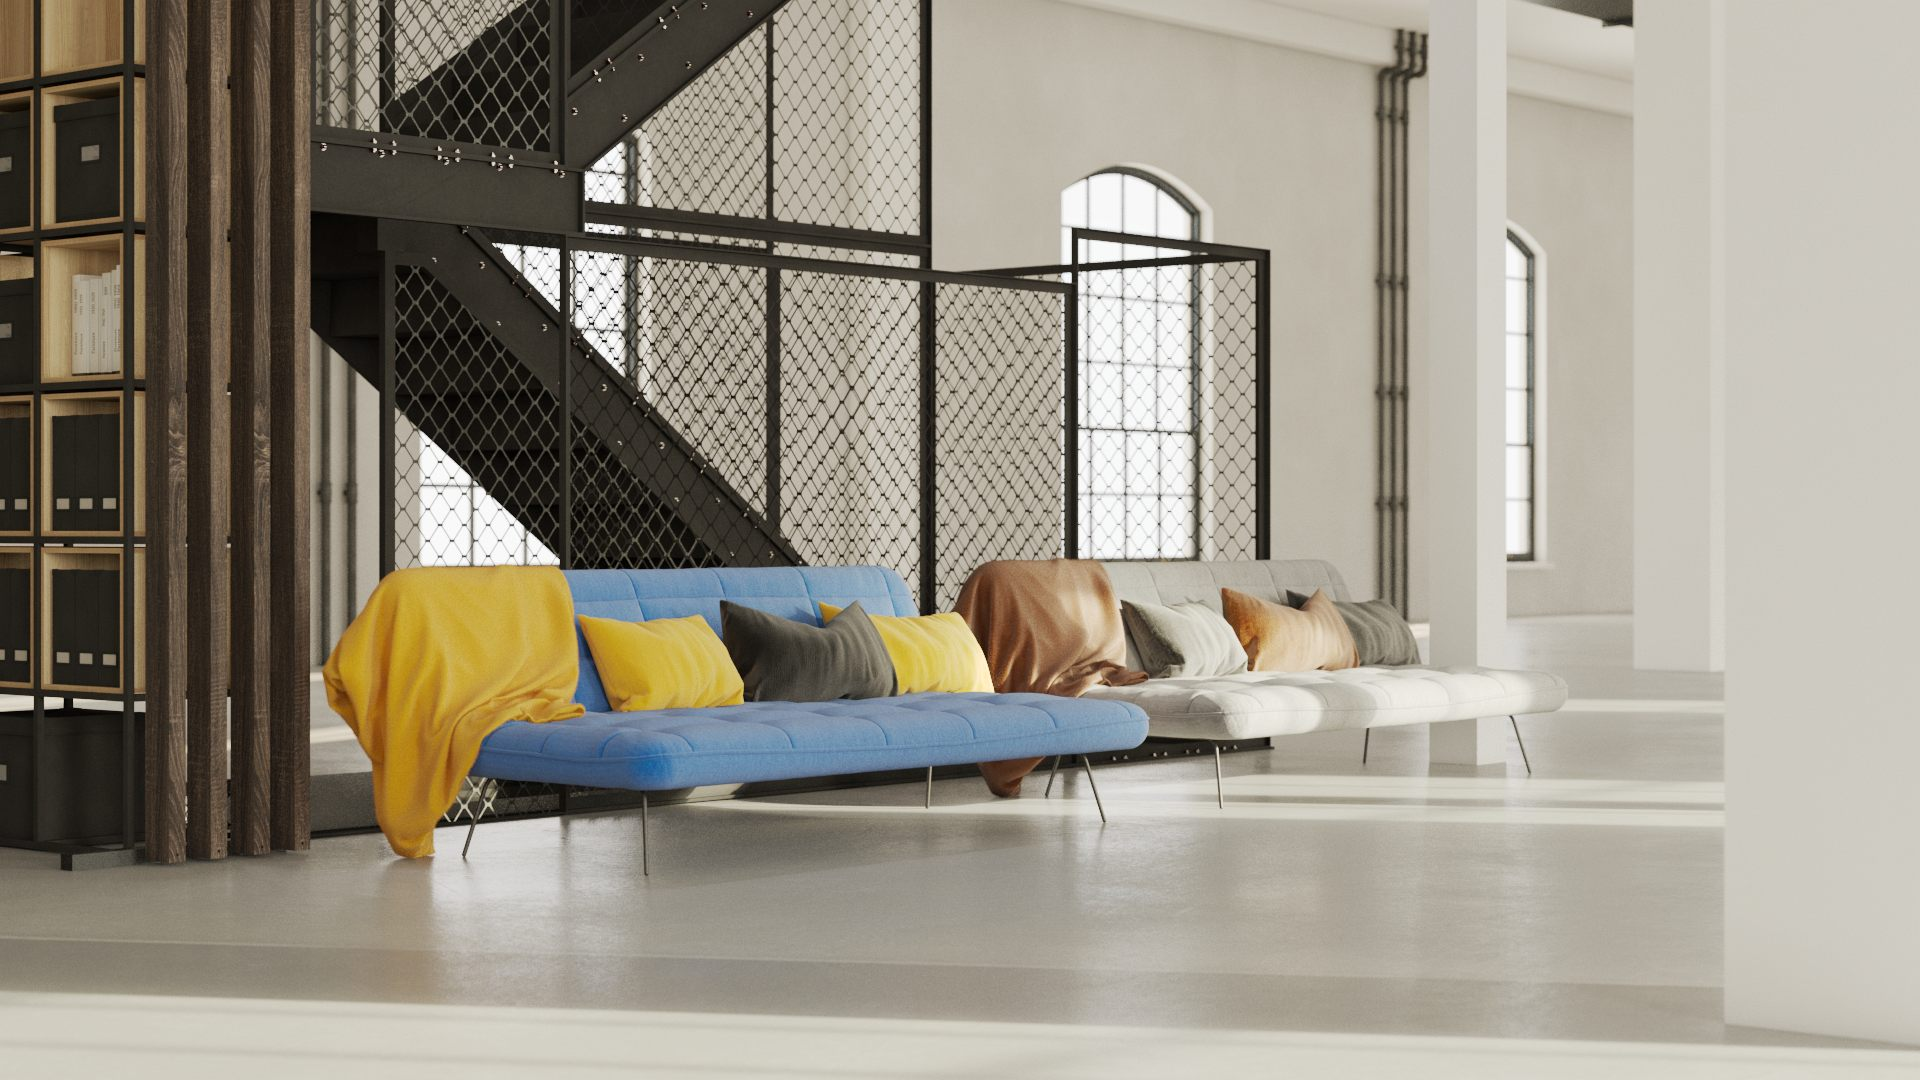 Sofa Berlin Design Berlin Loft Sofa Flyingarchitecture